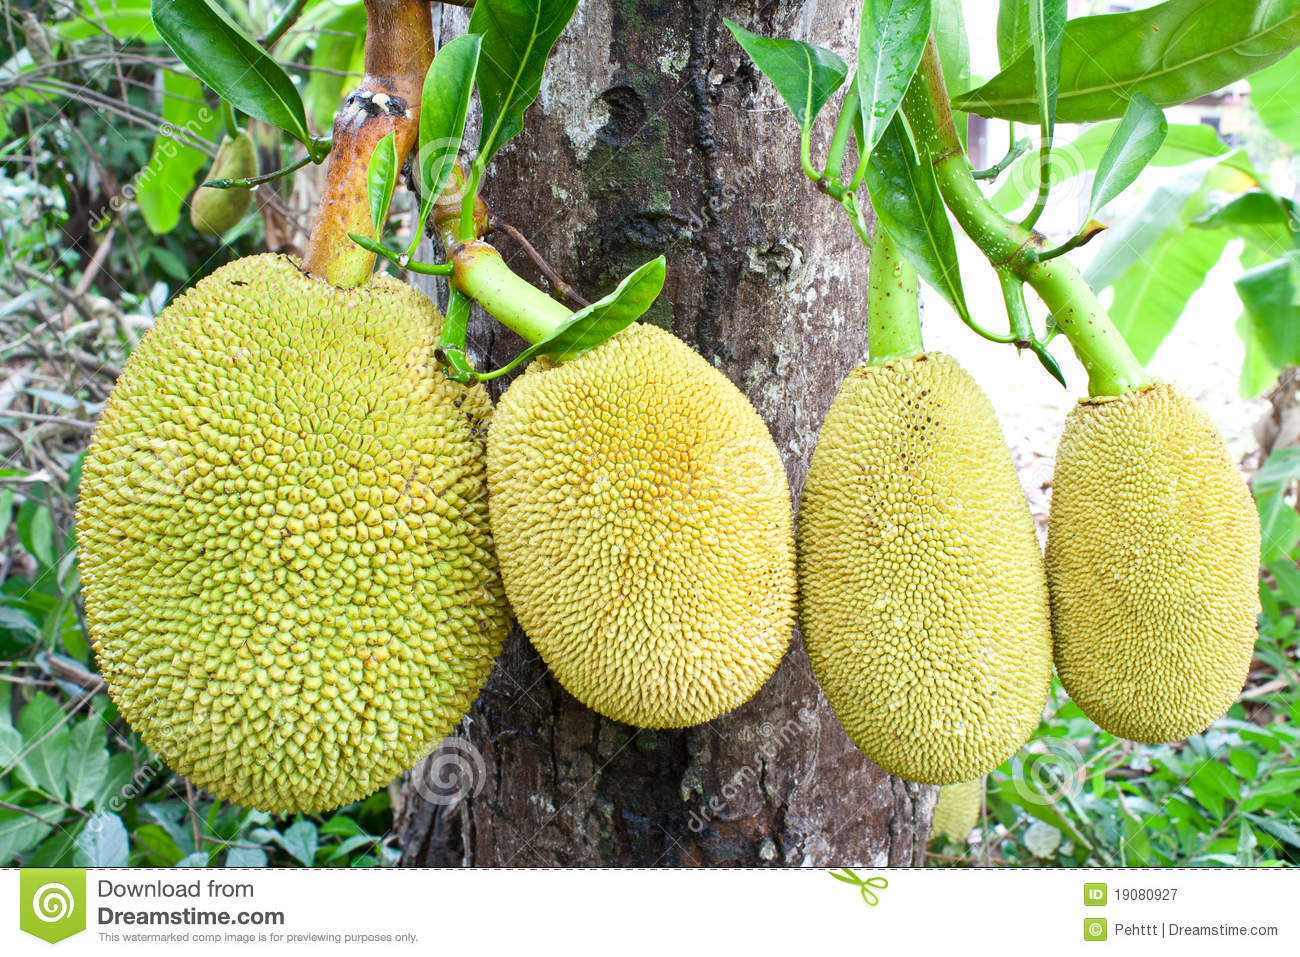 jackfruit tree stock photos, images,  pictures  , images, Natural flower